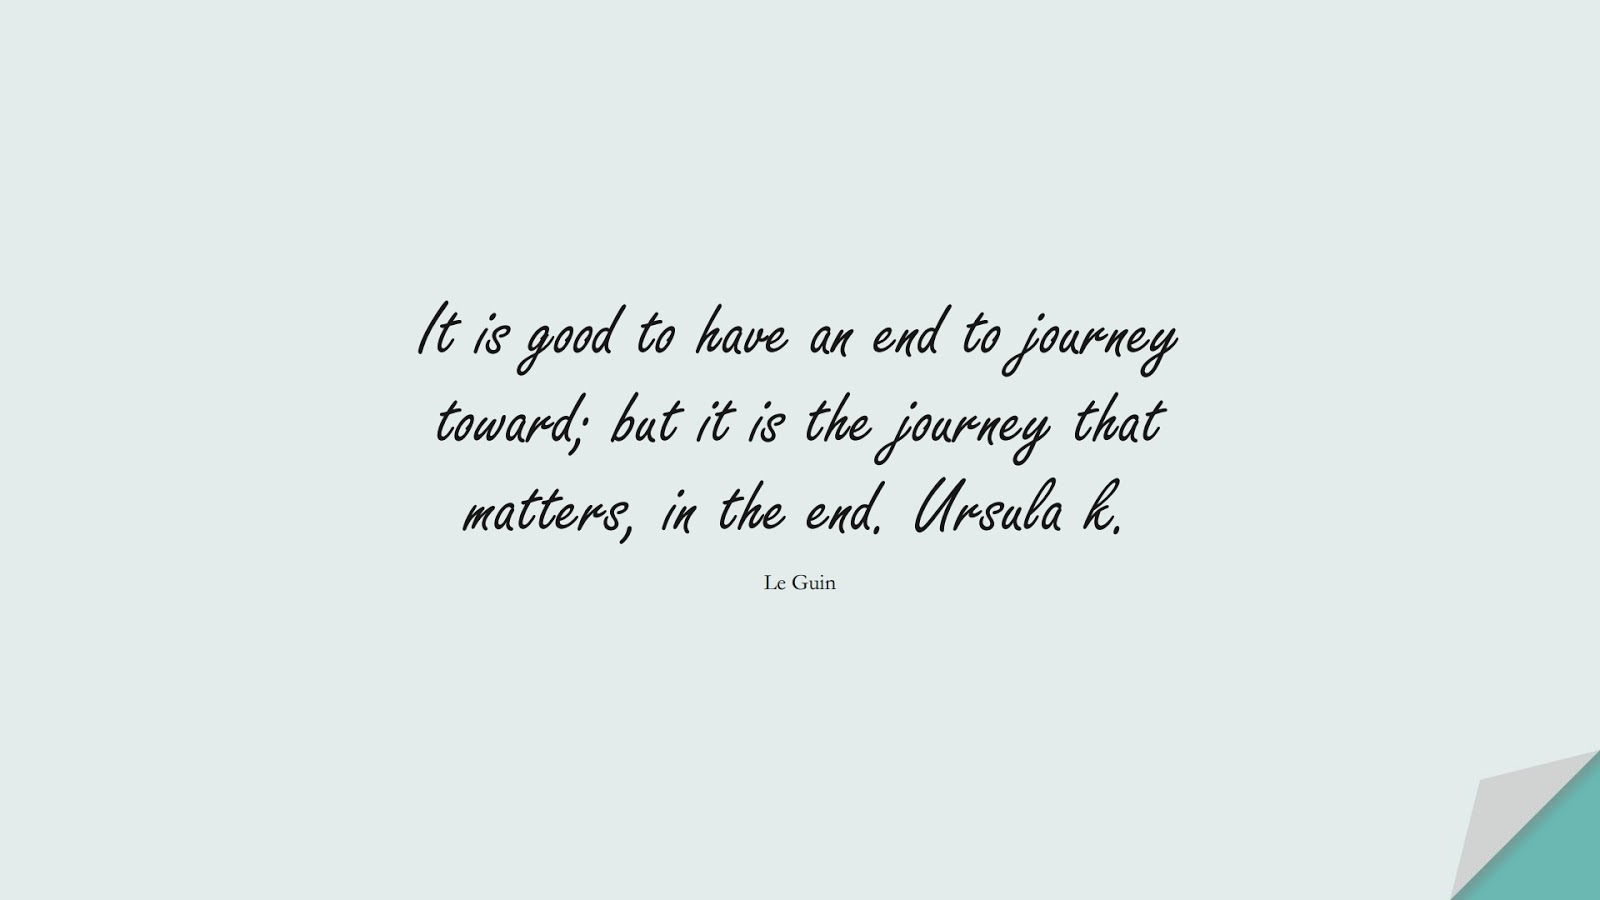 It is good to have an end to journey toward; but it is the journey that matters, in the end. Ursula k. (Le Guin);  #HardWorkQuotes